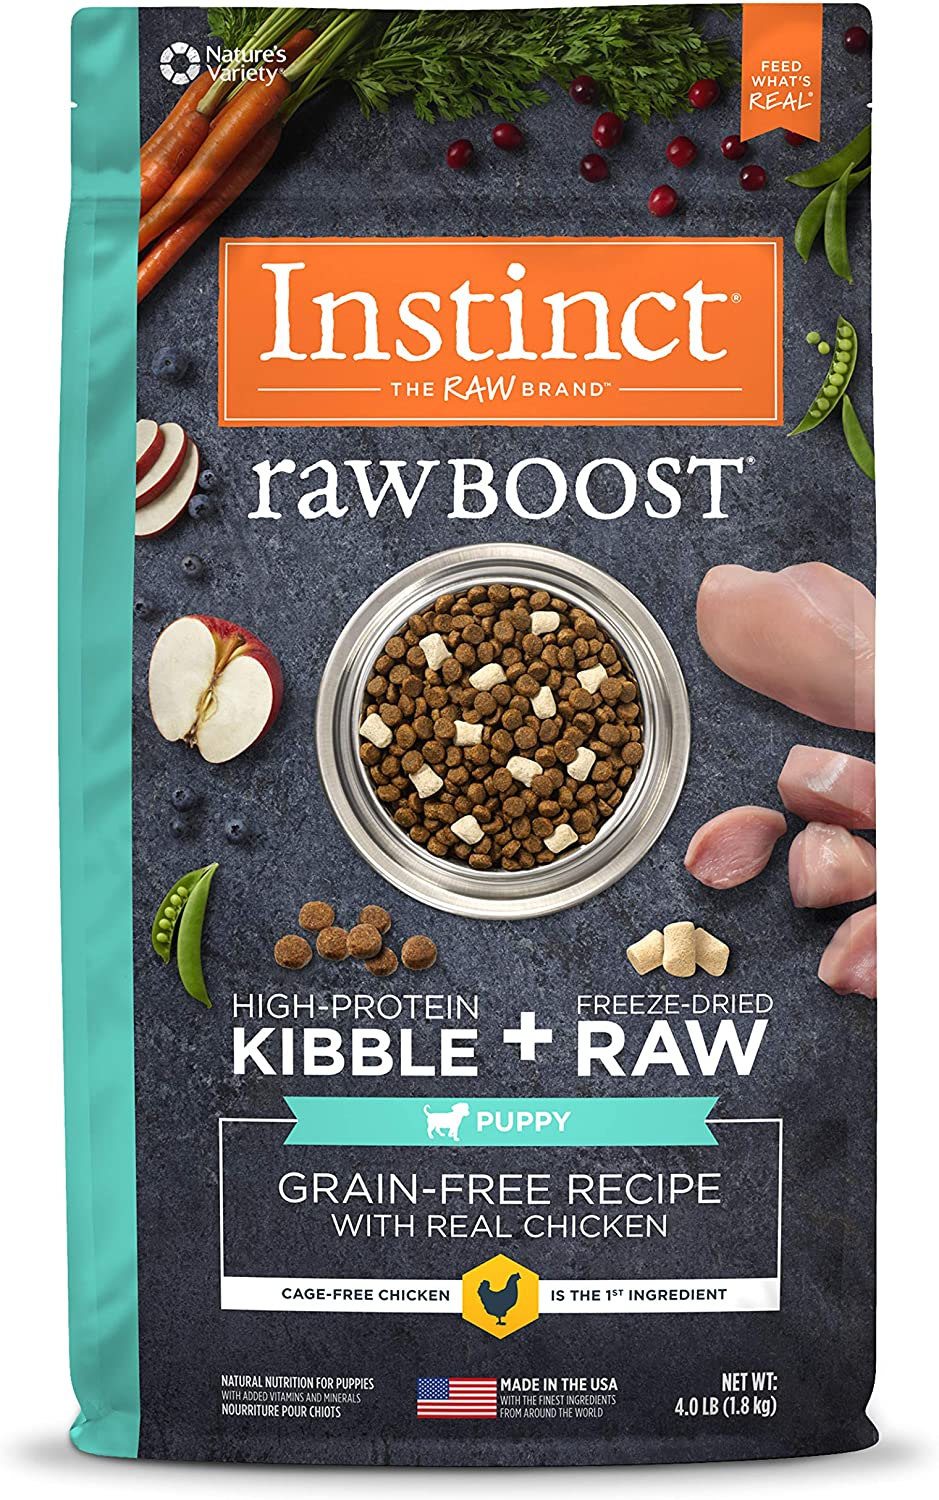 Amazon Com Instinct Raw Boost Puppy Grain Free Recipe With Real Chicken Natural Dry Dog Food By Nature S Variety 4 Lb Bag Pet Supplies